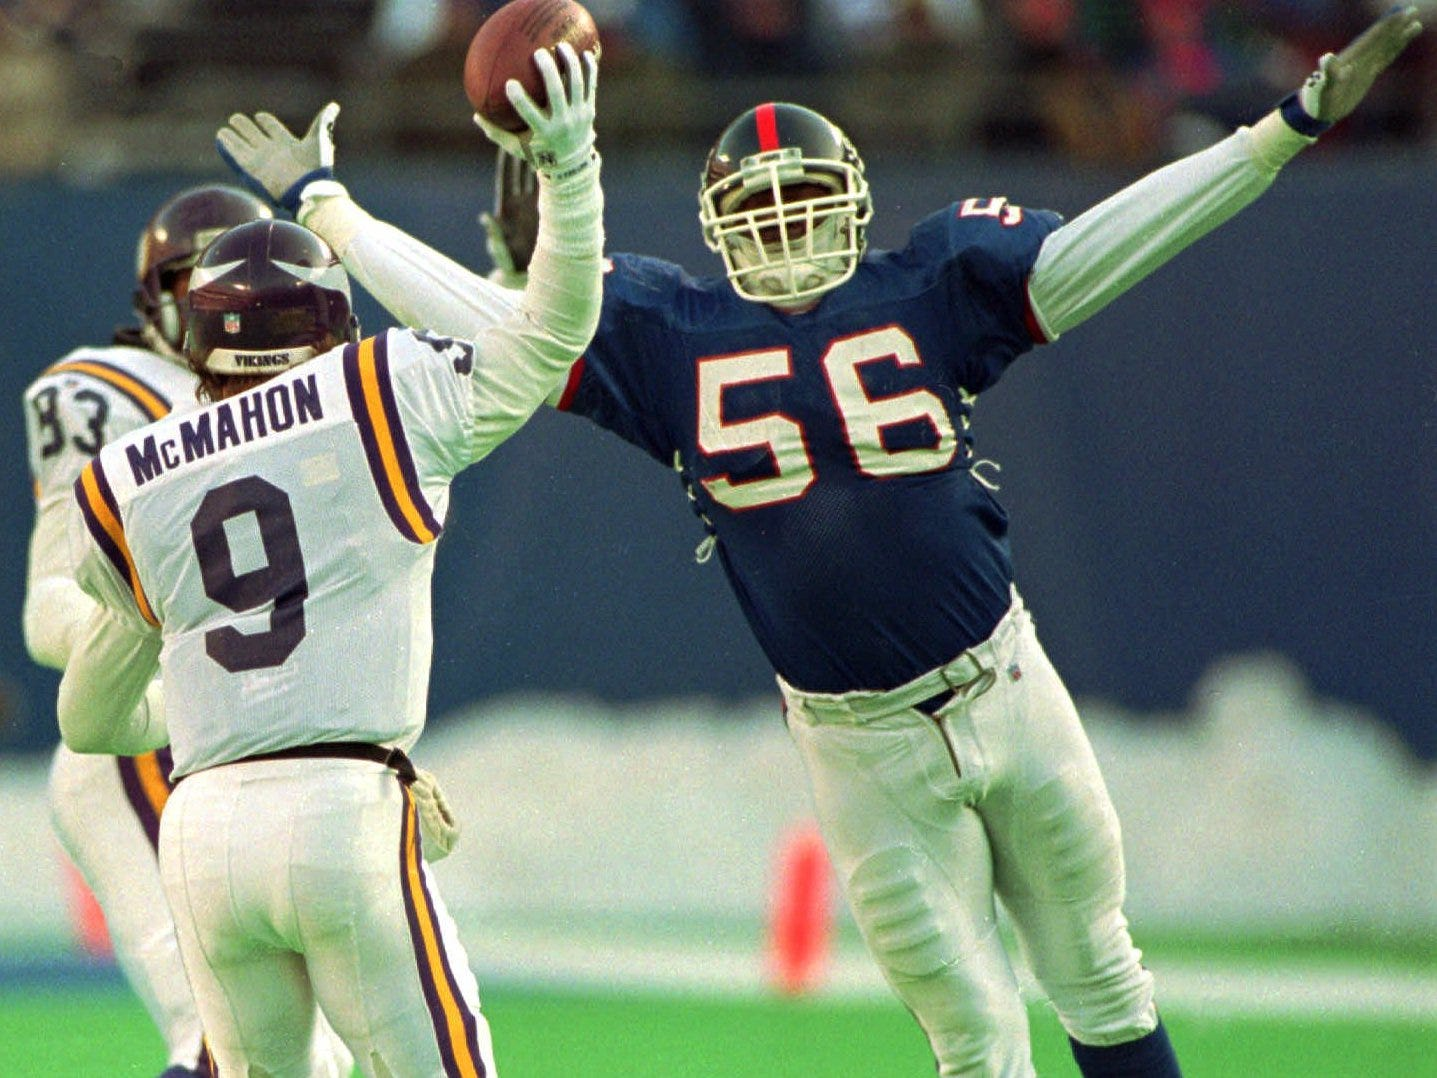 Lawrence Taylor - Probably the most feared pass rusher in league history.